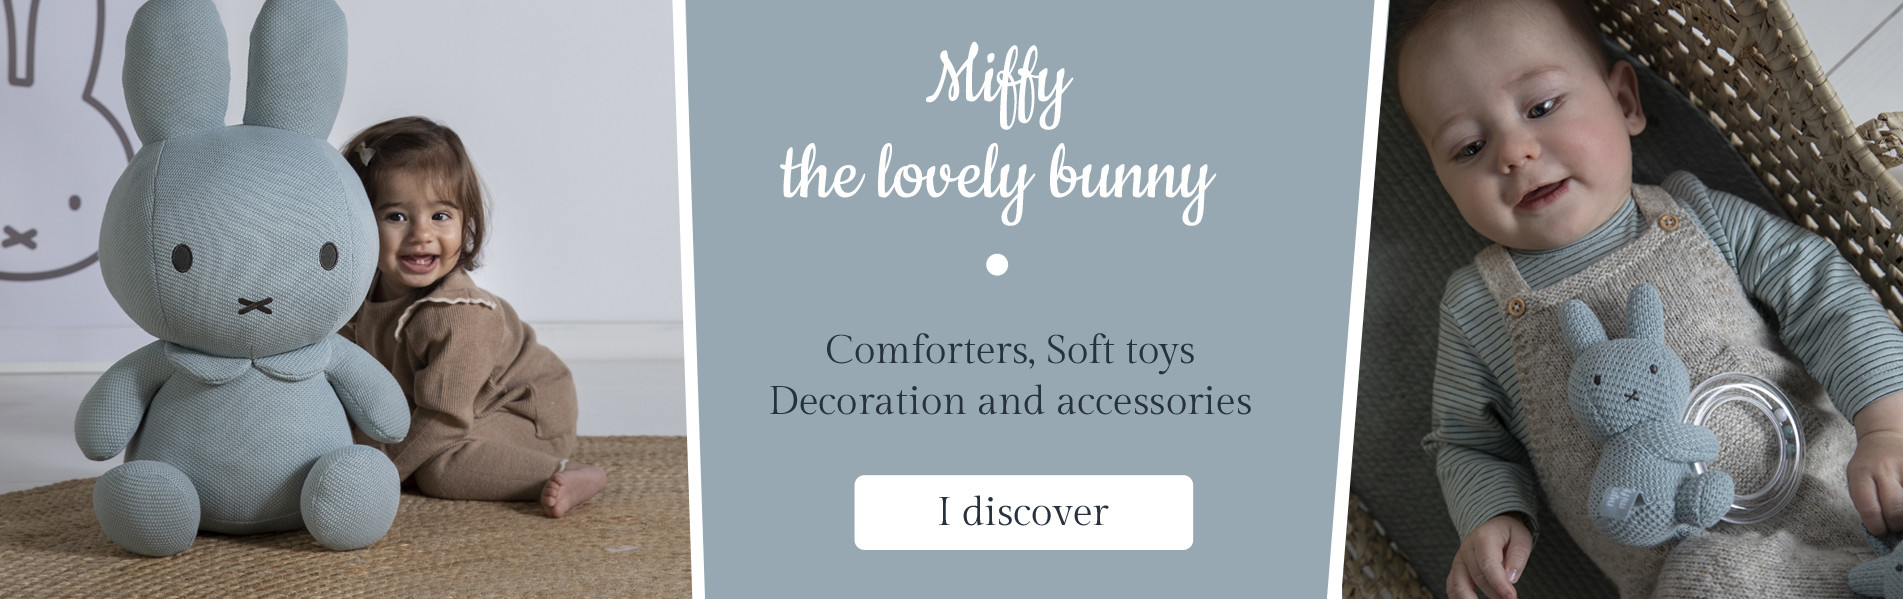 Miffy the lovely bunny